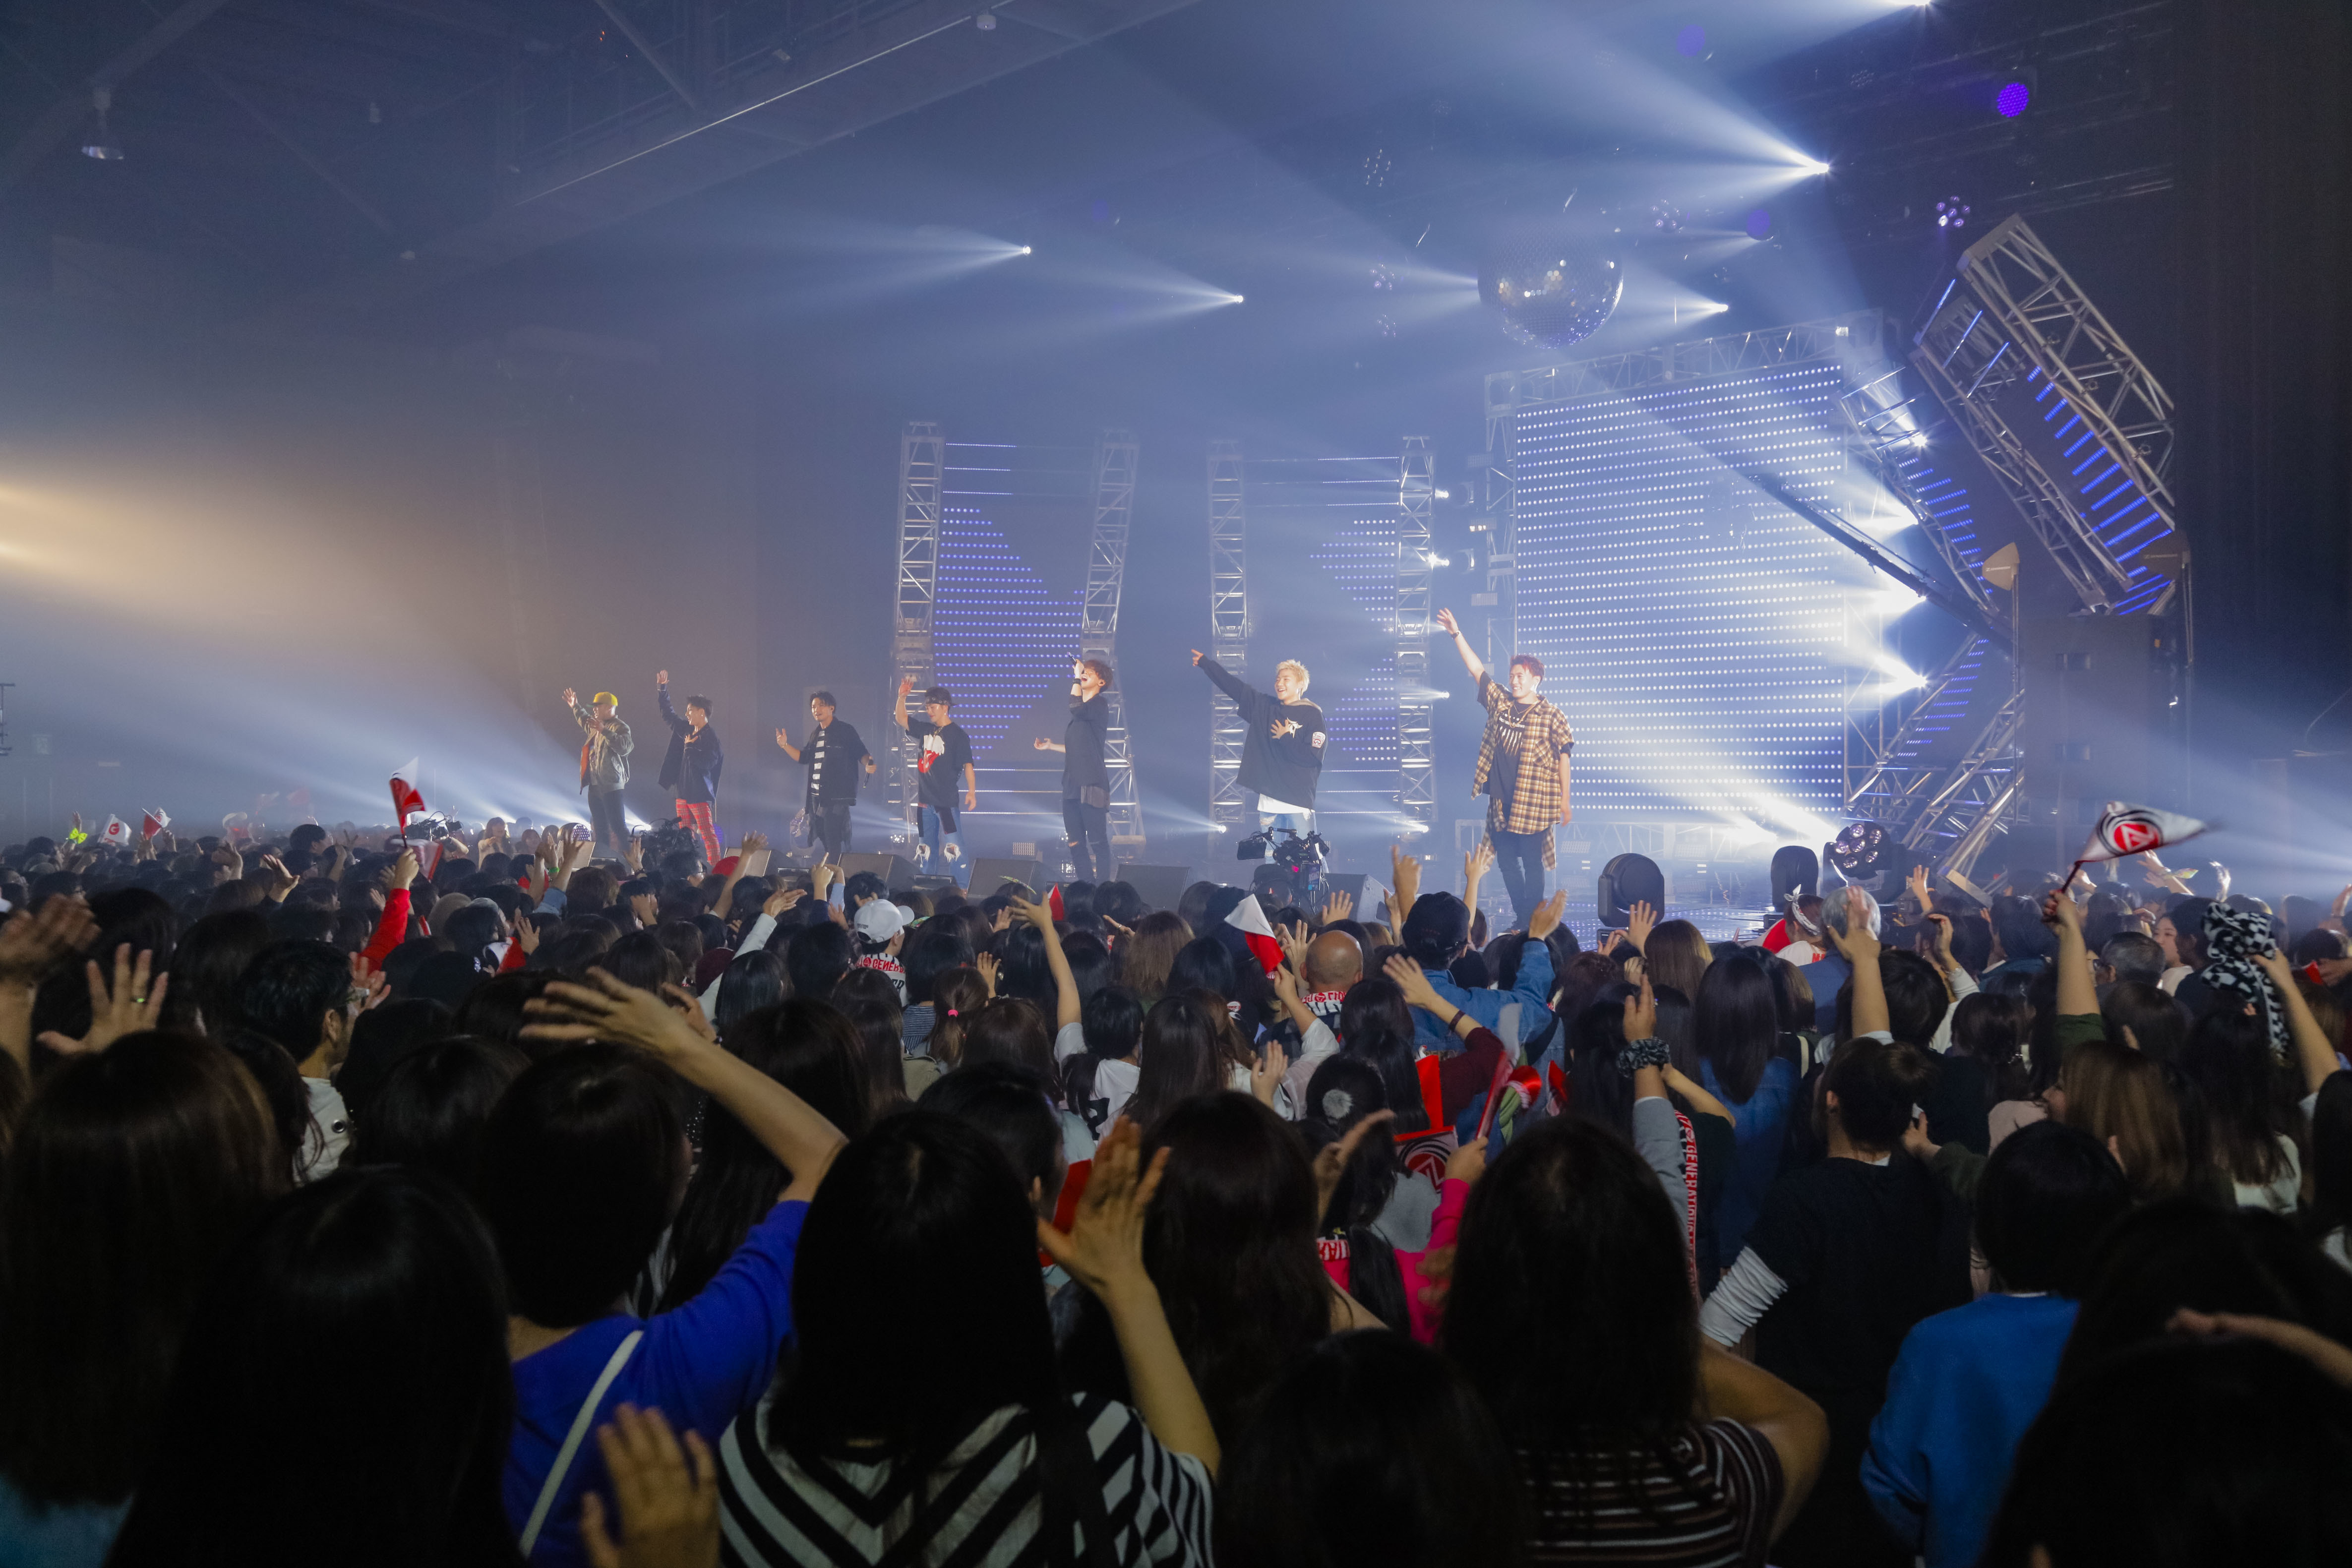 GENERATIONS from EXILE TRIBE ×WOWOW オリジナルスタジオライブ